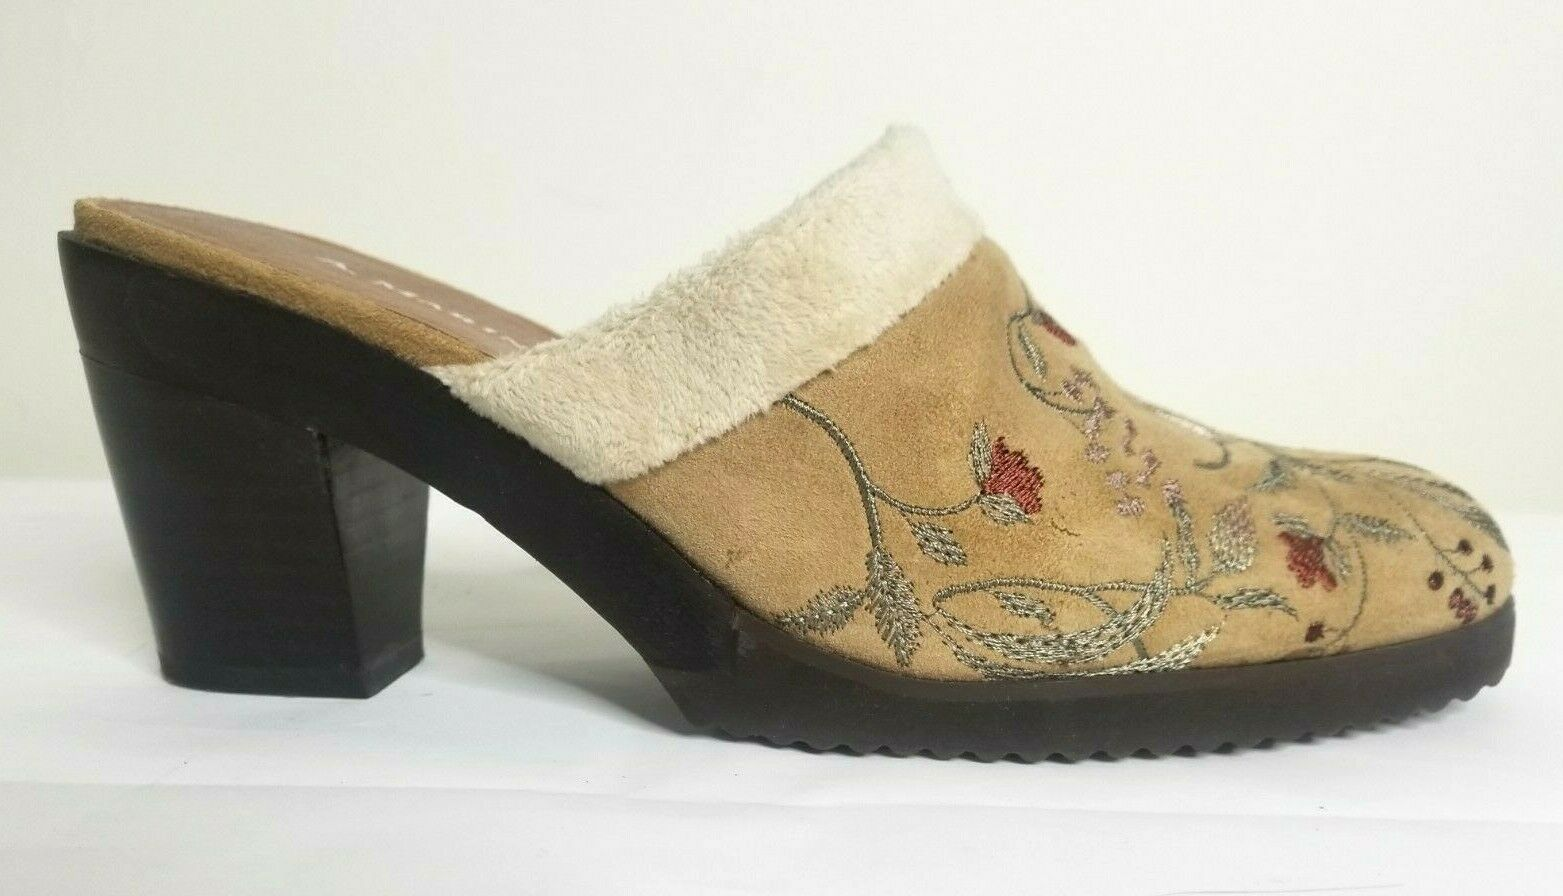 A Marinelli Embroidered Mules Women's 7 Suede Shoes Minky Trim Chunky Heel Clog